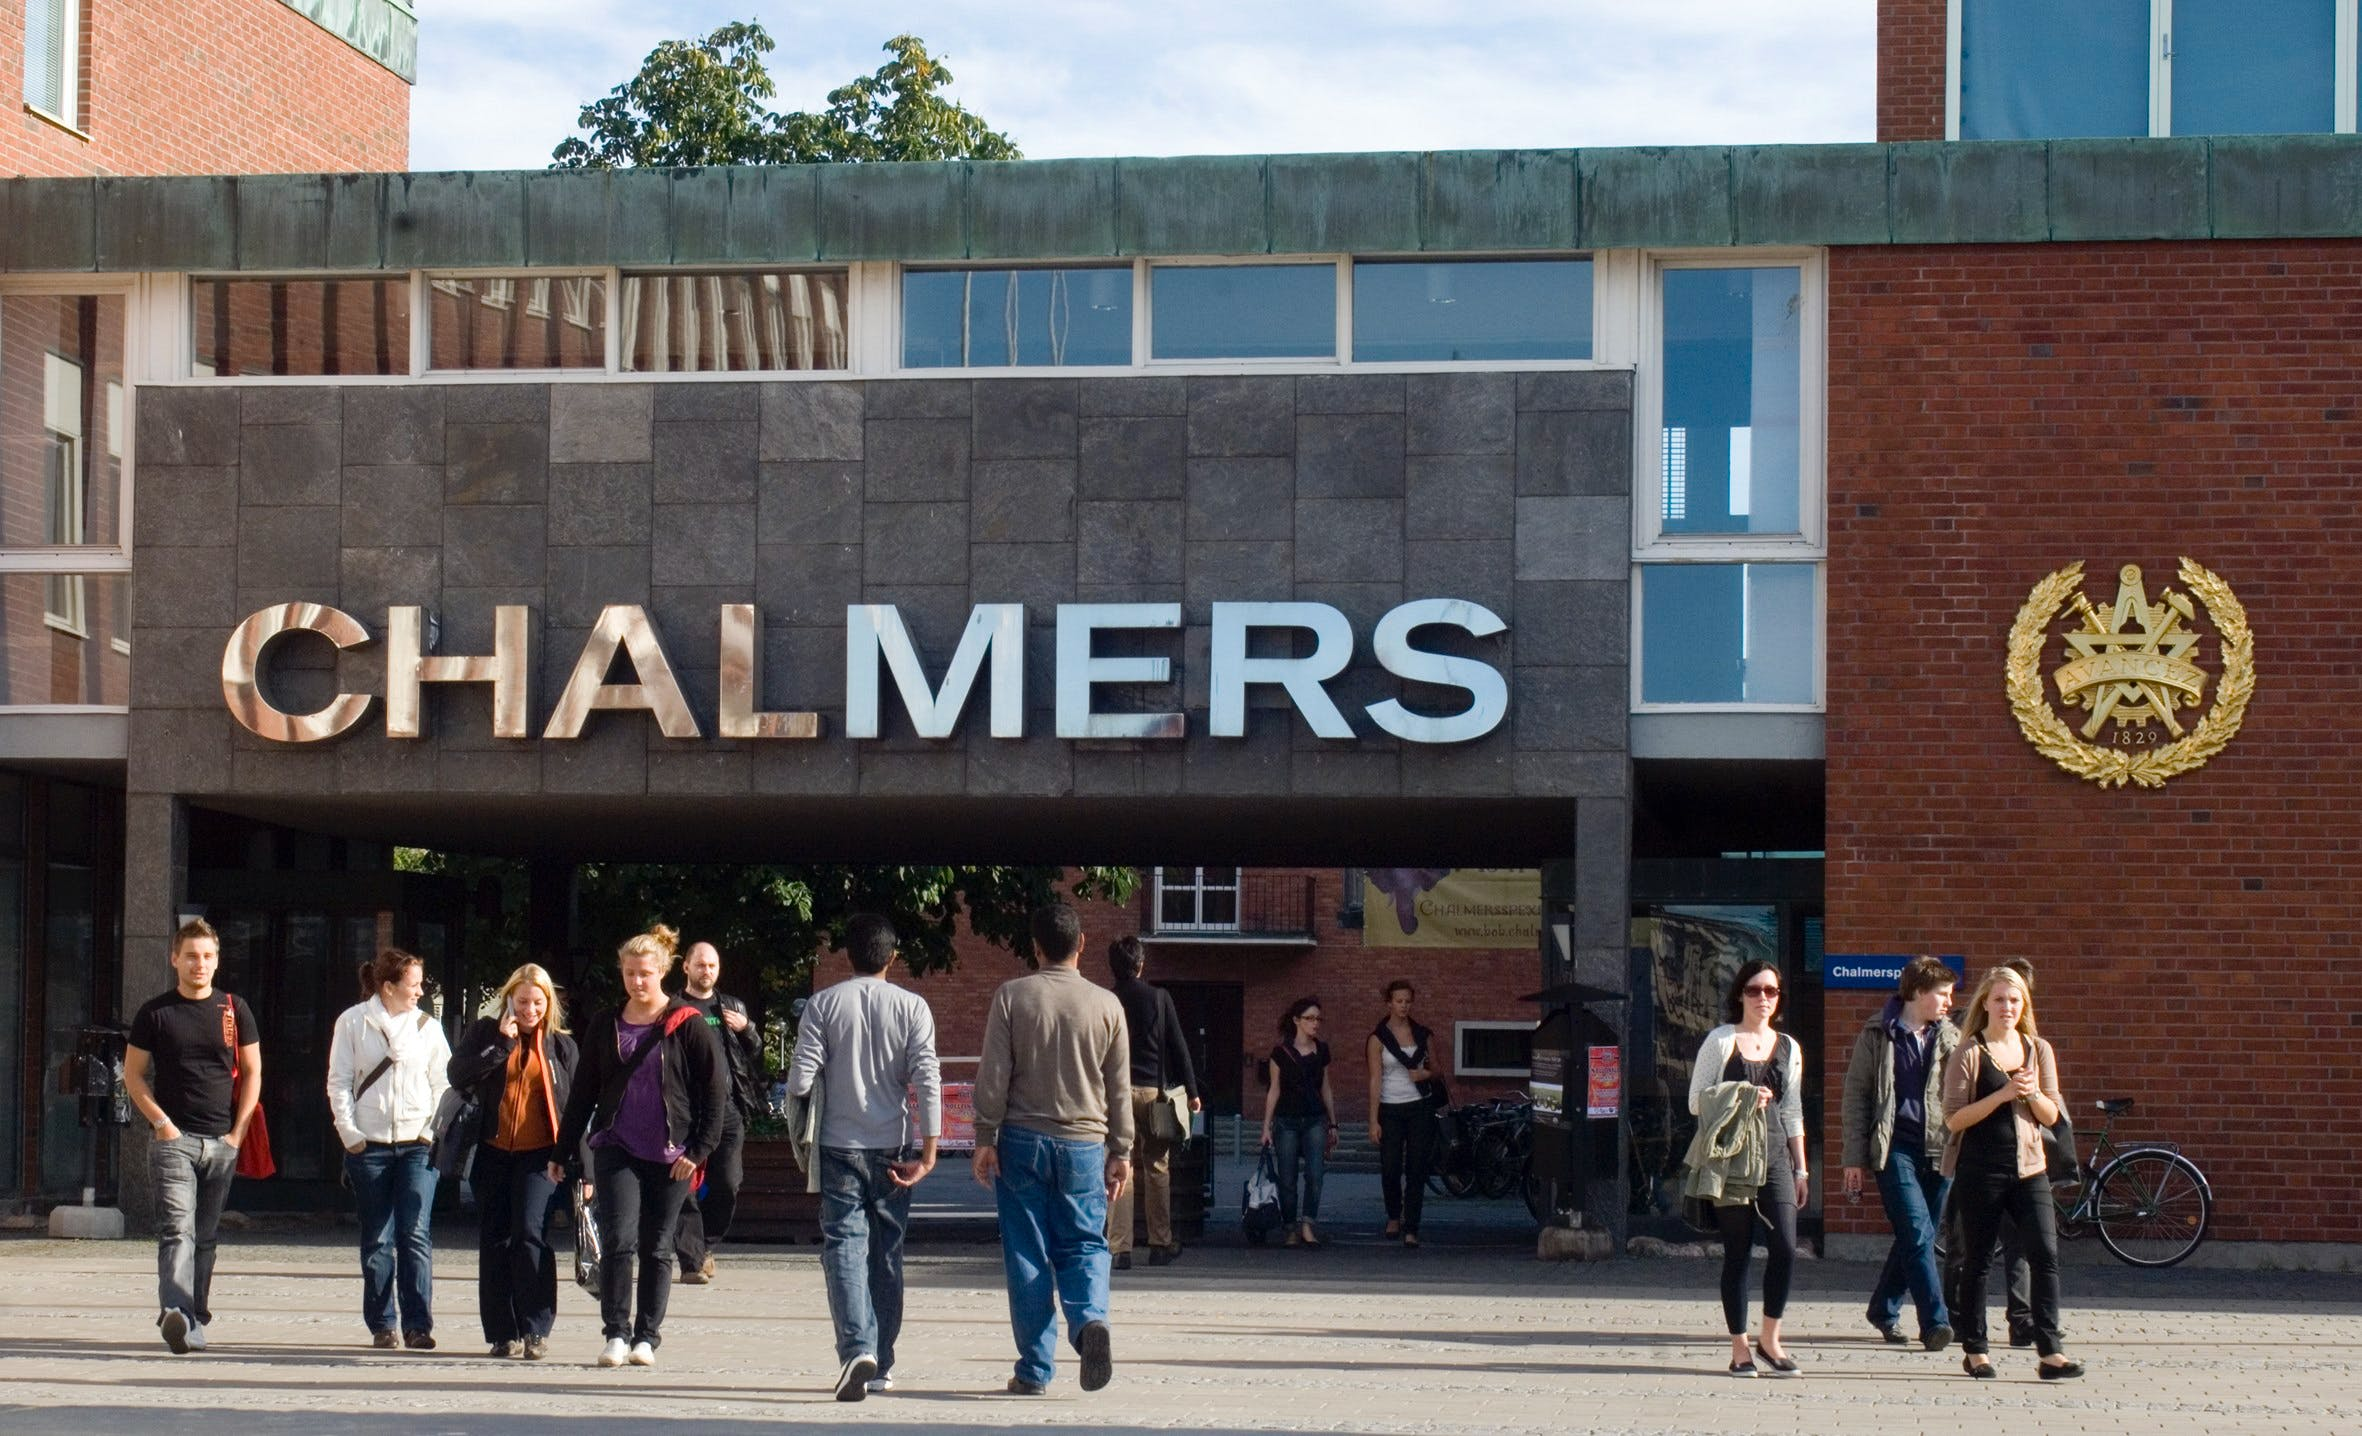 chalmers David john chalmers (/ ˈ tʃ æ l m ər z / born 20 april 1966) is an australian philosopher and cognitive scientist specializing in the areas of philosophy of mind and philosophy of languagehe is professor of philosophy and director of the centre for consciousness at the australian national universityhe is also a university professor, professor of philosophy and neural science, and a.